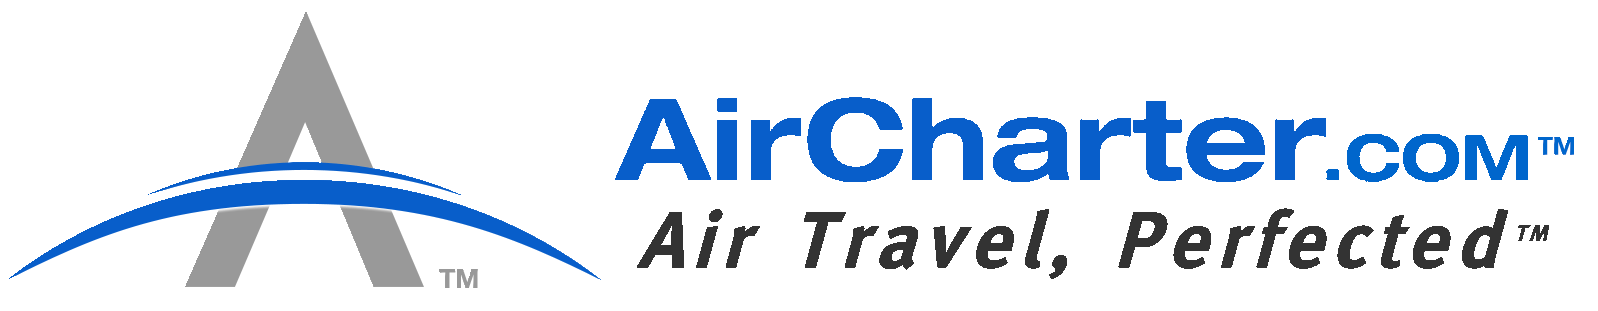 Air Charter Services – Private Jet Charter, Executive Jets, Jet Rental with Guaranteed prices